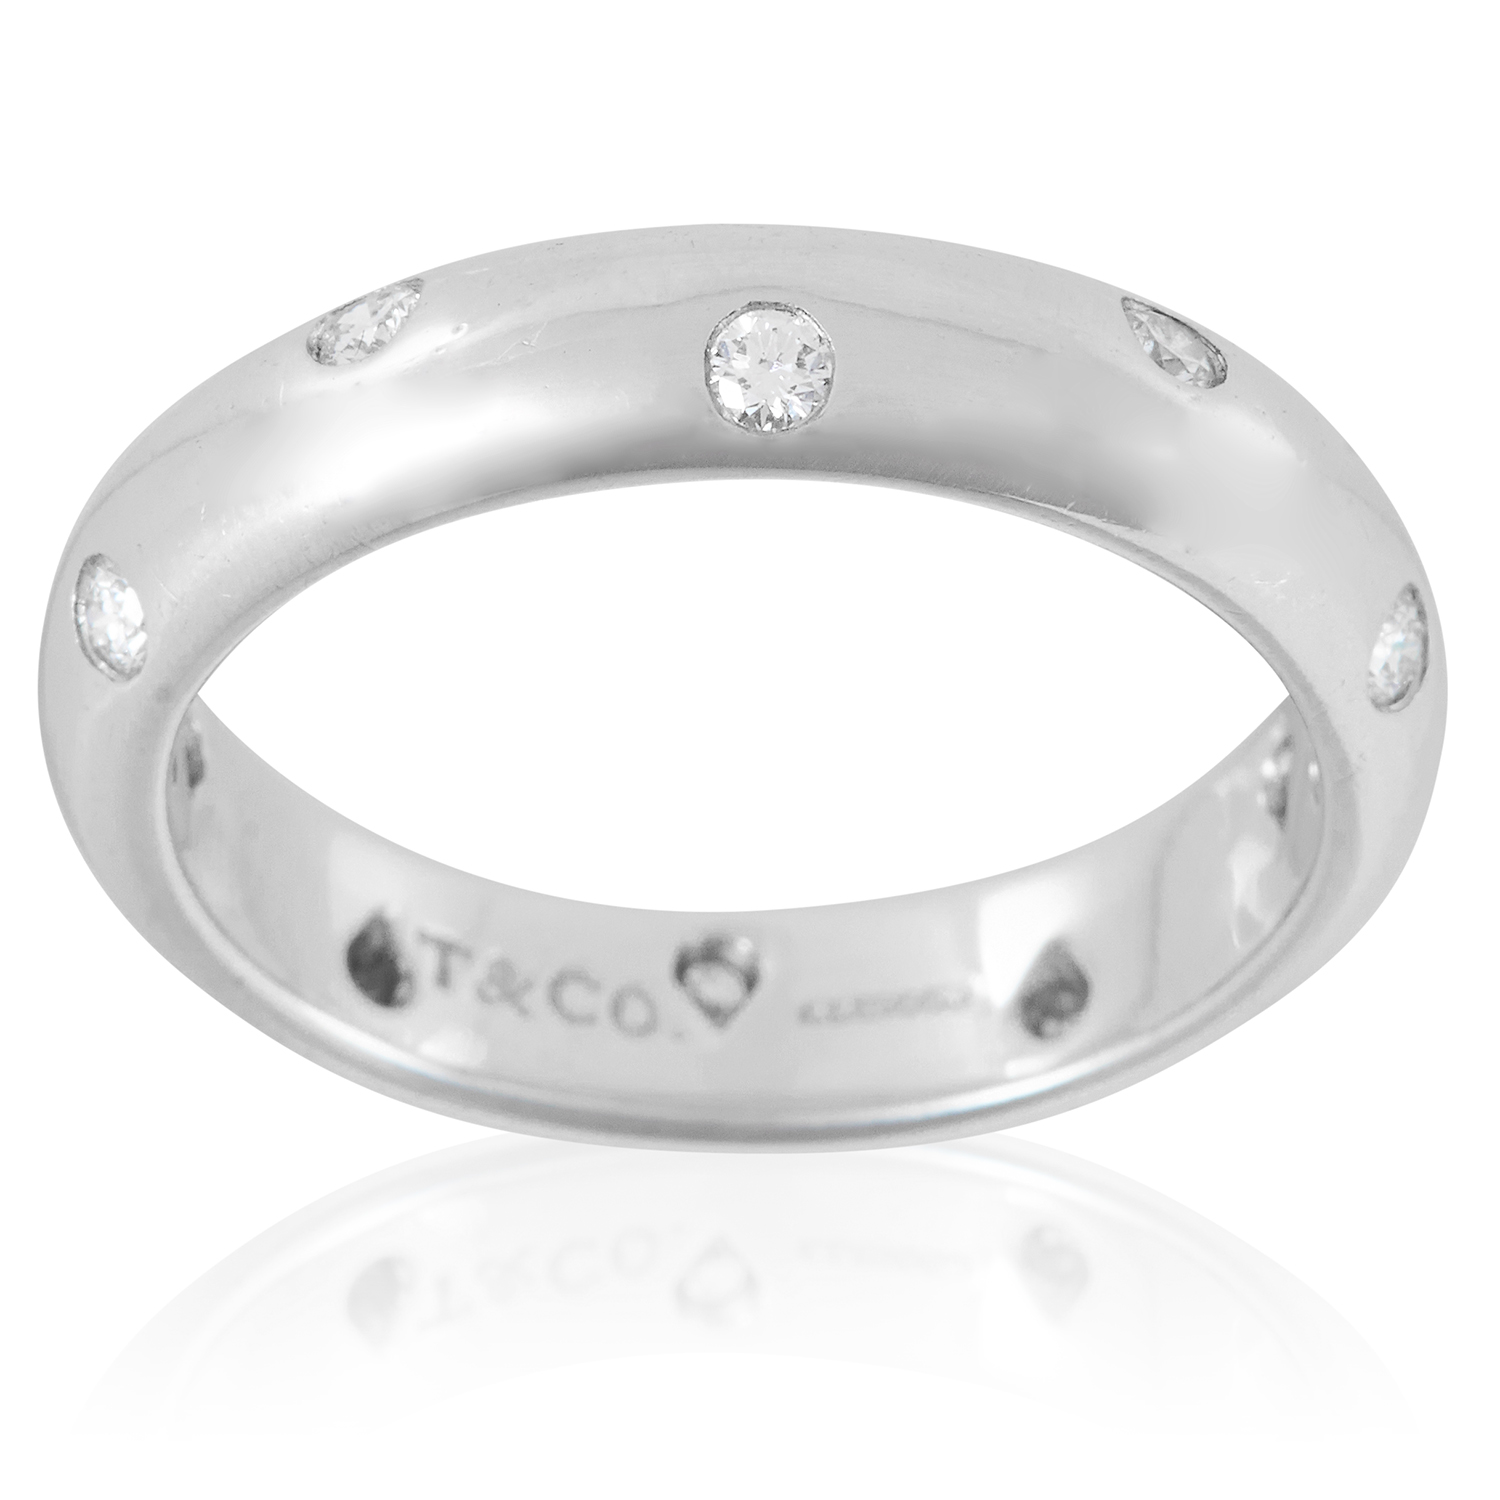 Los 15 - AN ETOILE DIAMOND ETERNITY RING, TIFFANY & CO in platinum, the plain, bevelled band set with ten